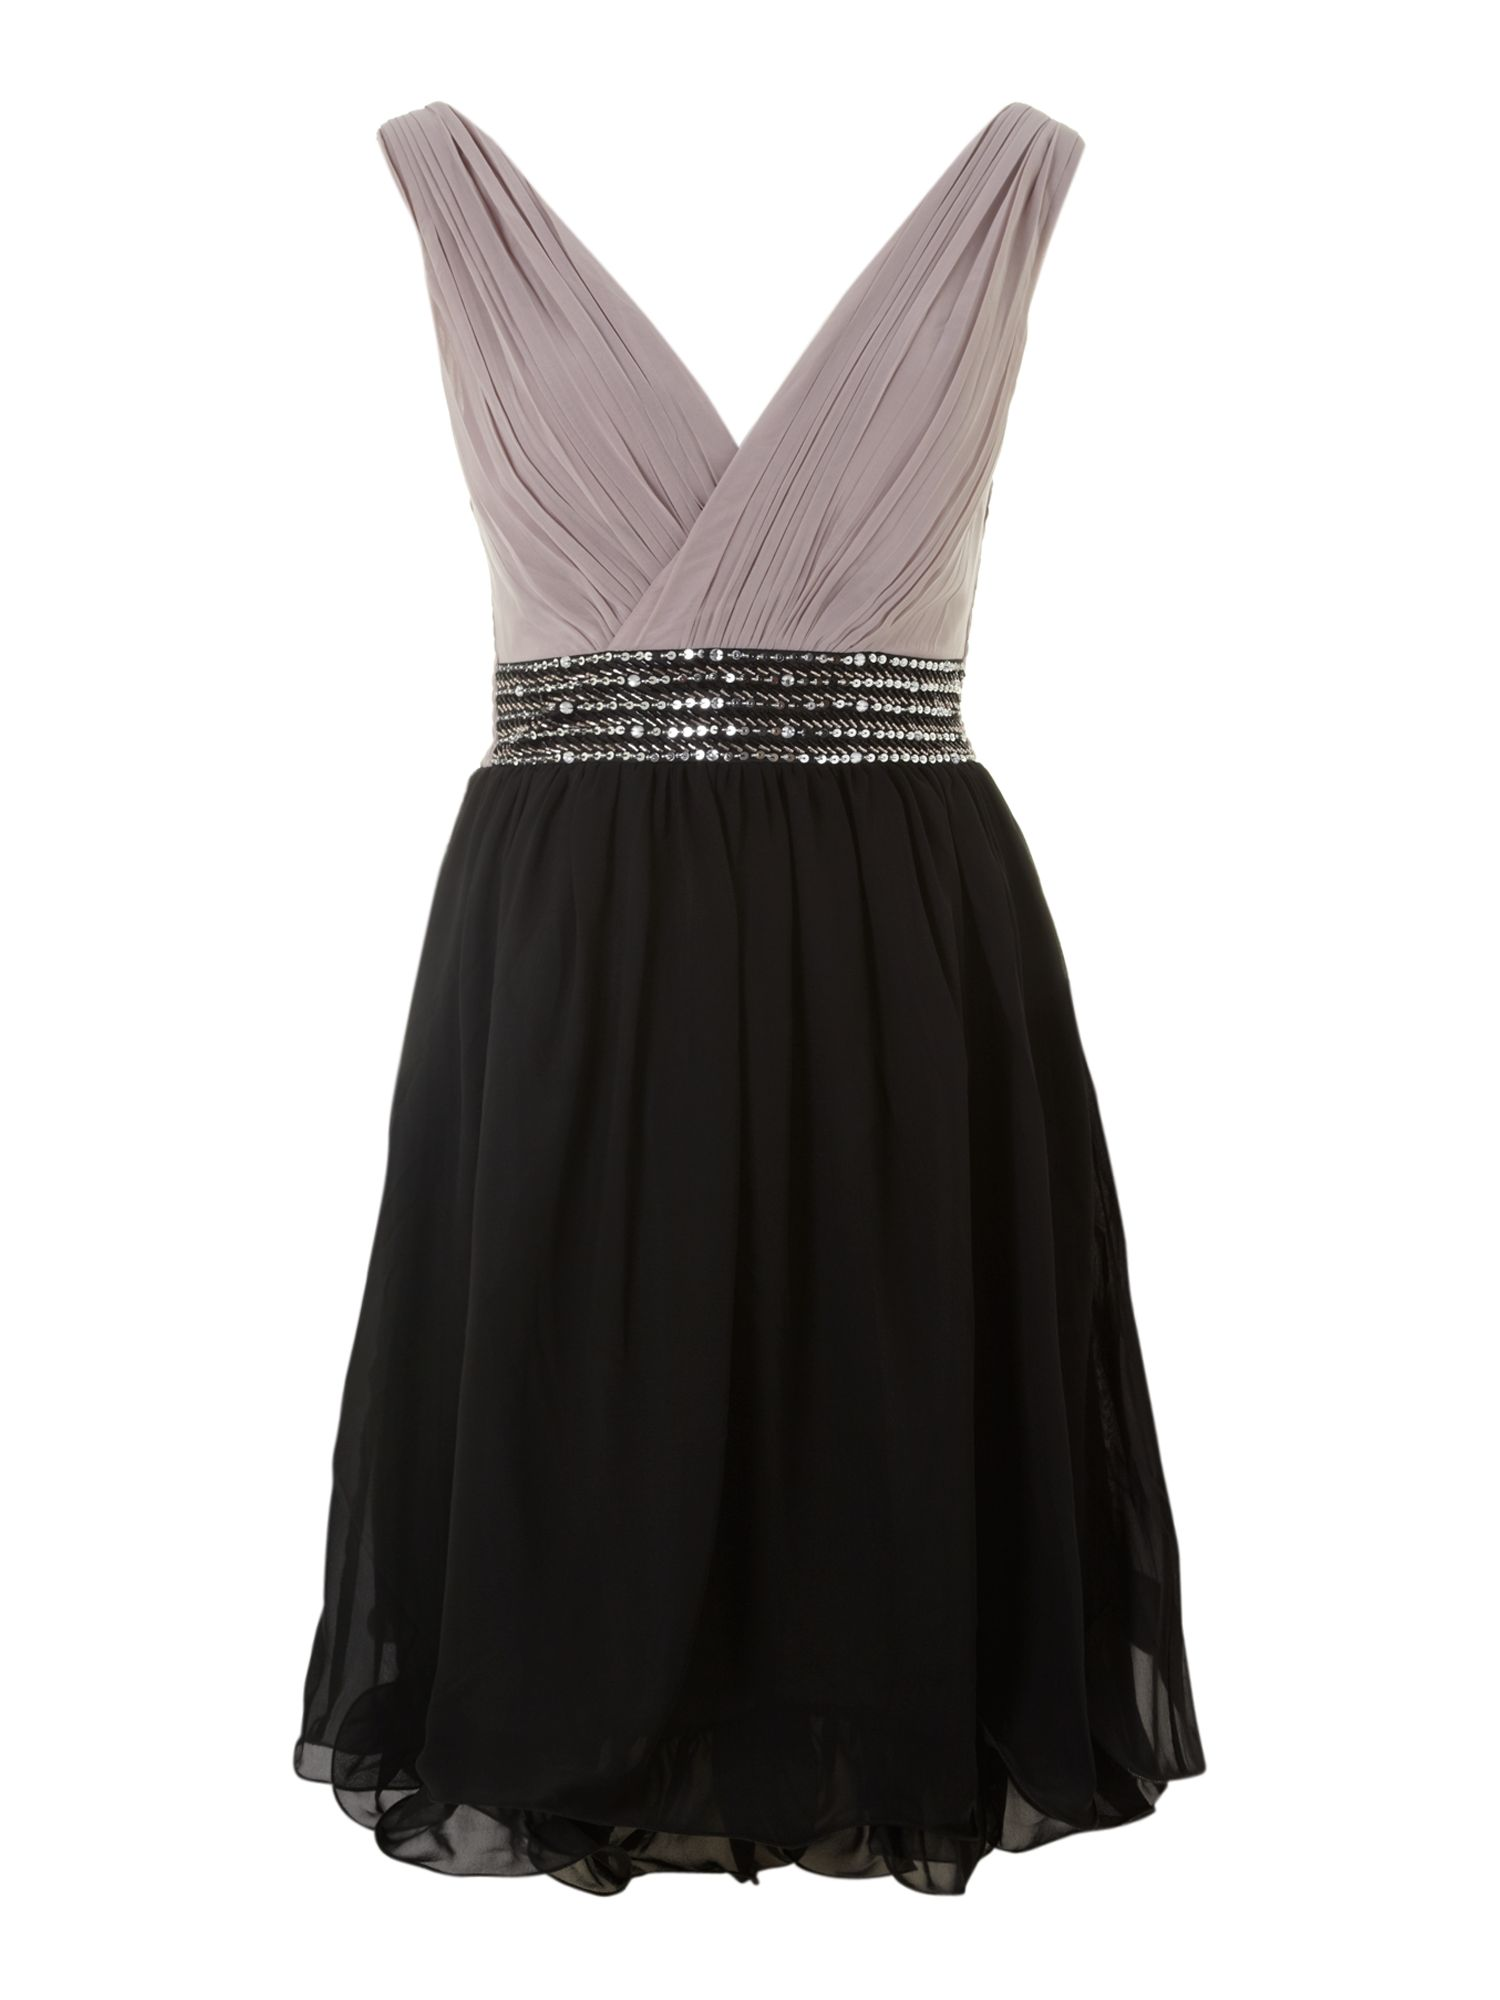 Cross over embellished waist dress